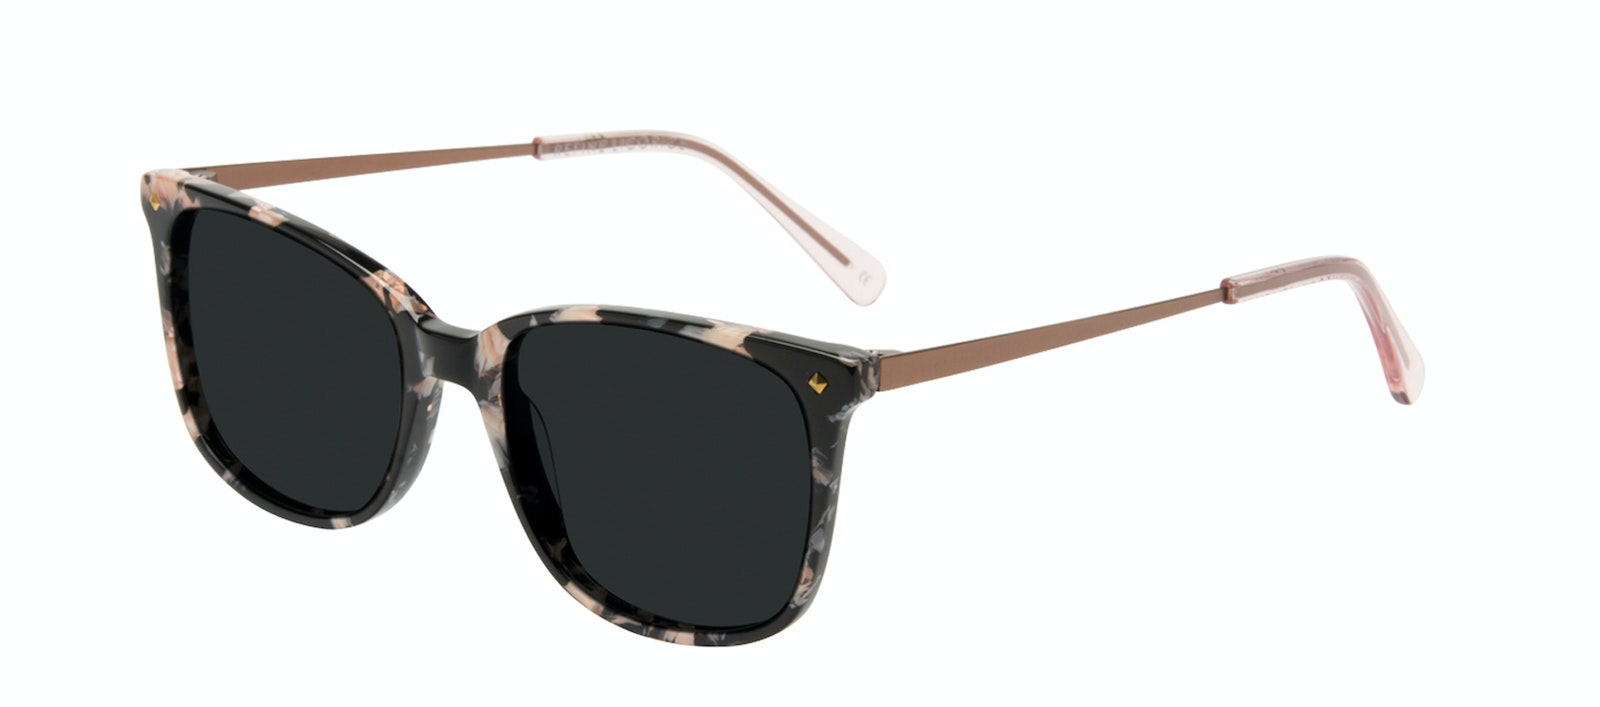 Affordable Fashion Glasses Rectangle Square Sunglasses Women Refine Licorice Tilt